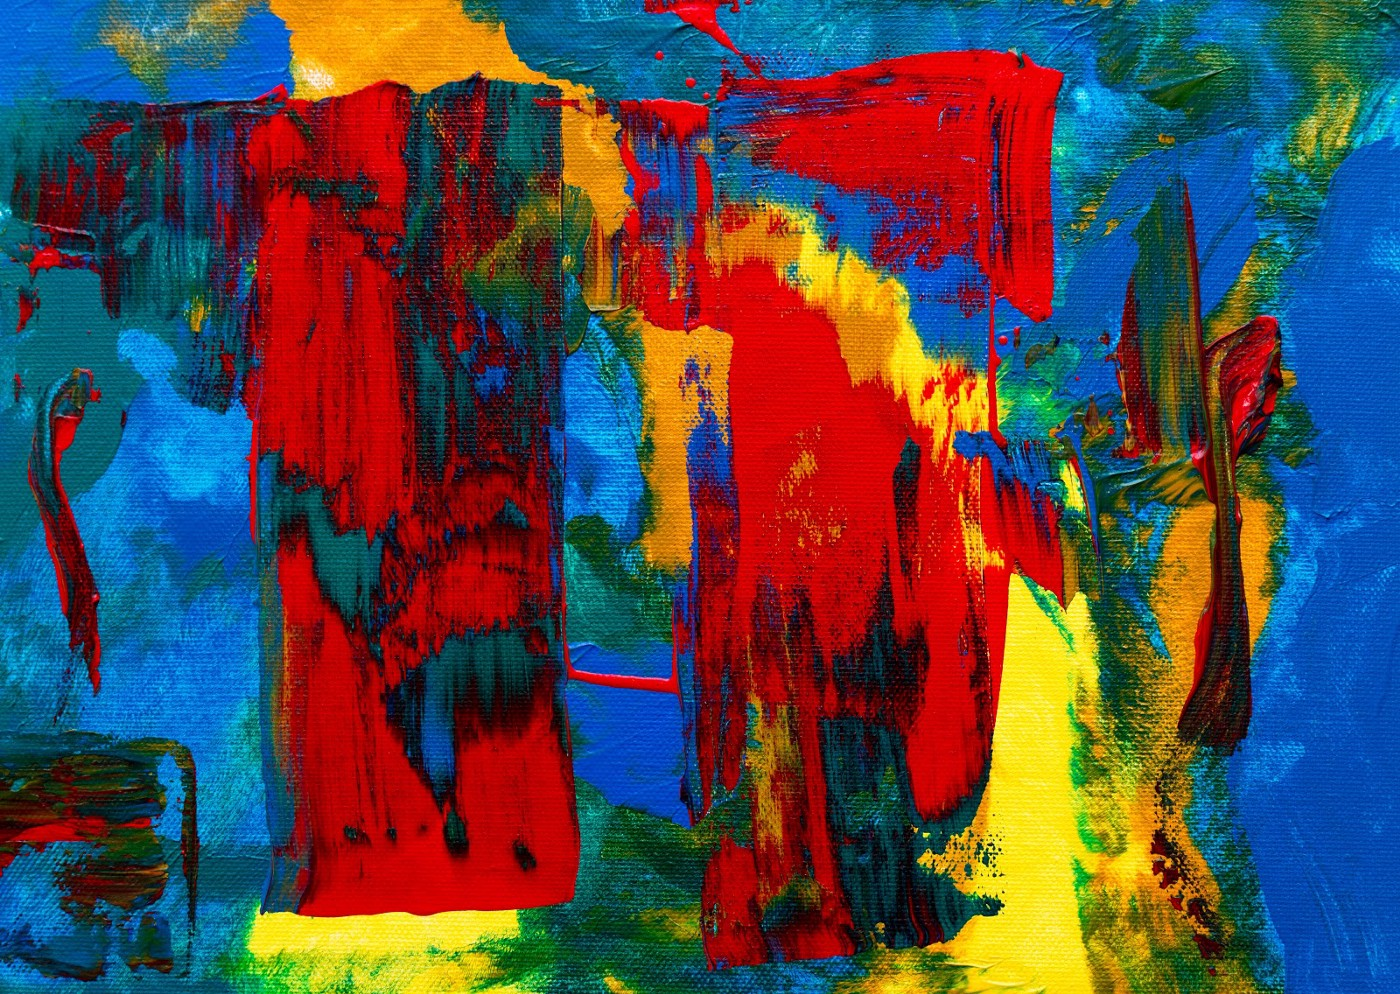 An abstract painting of red, blue, green, and yellow.